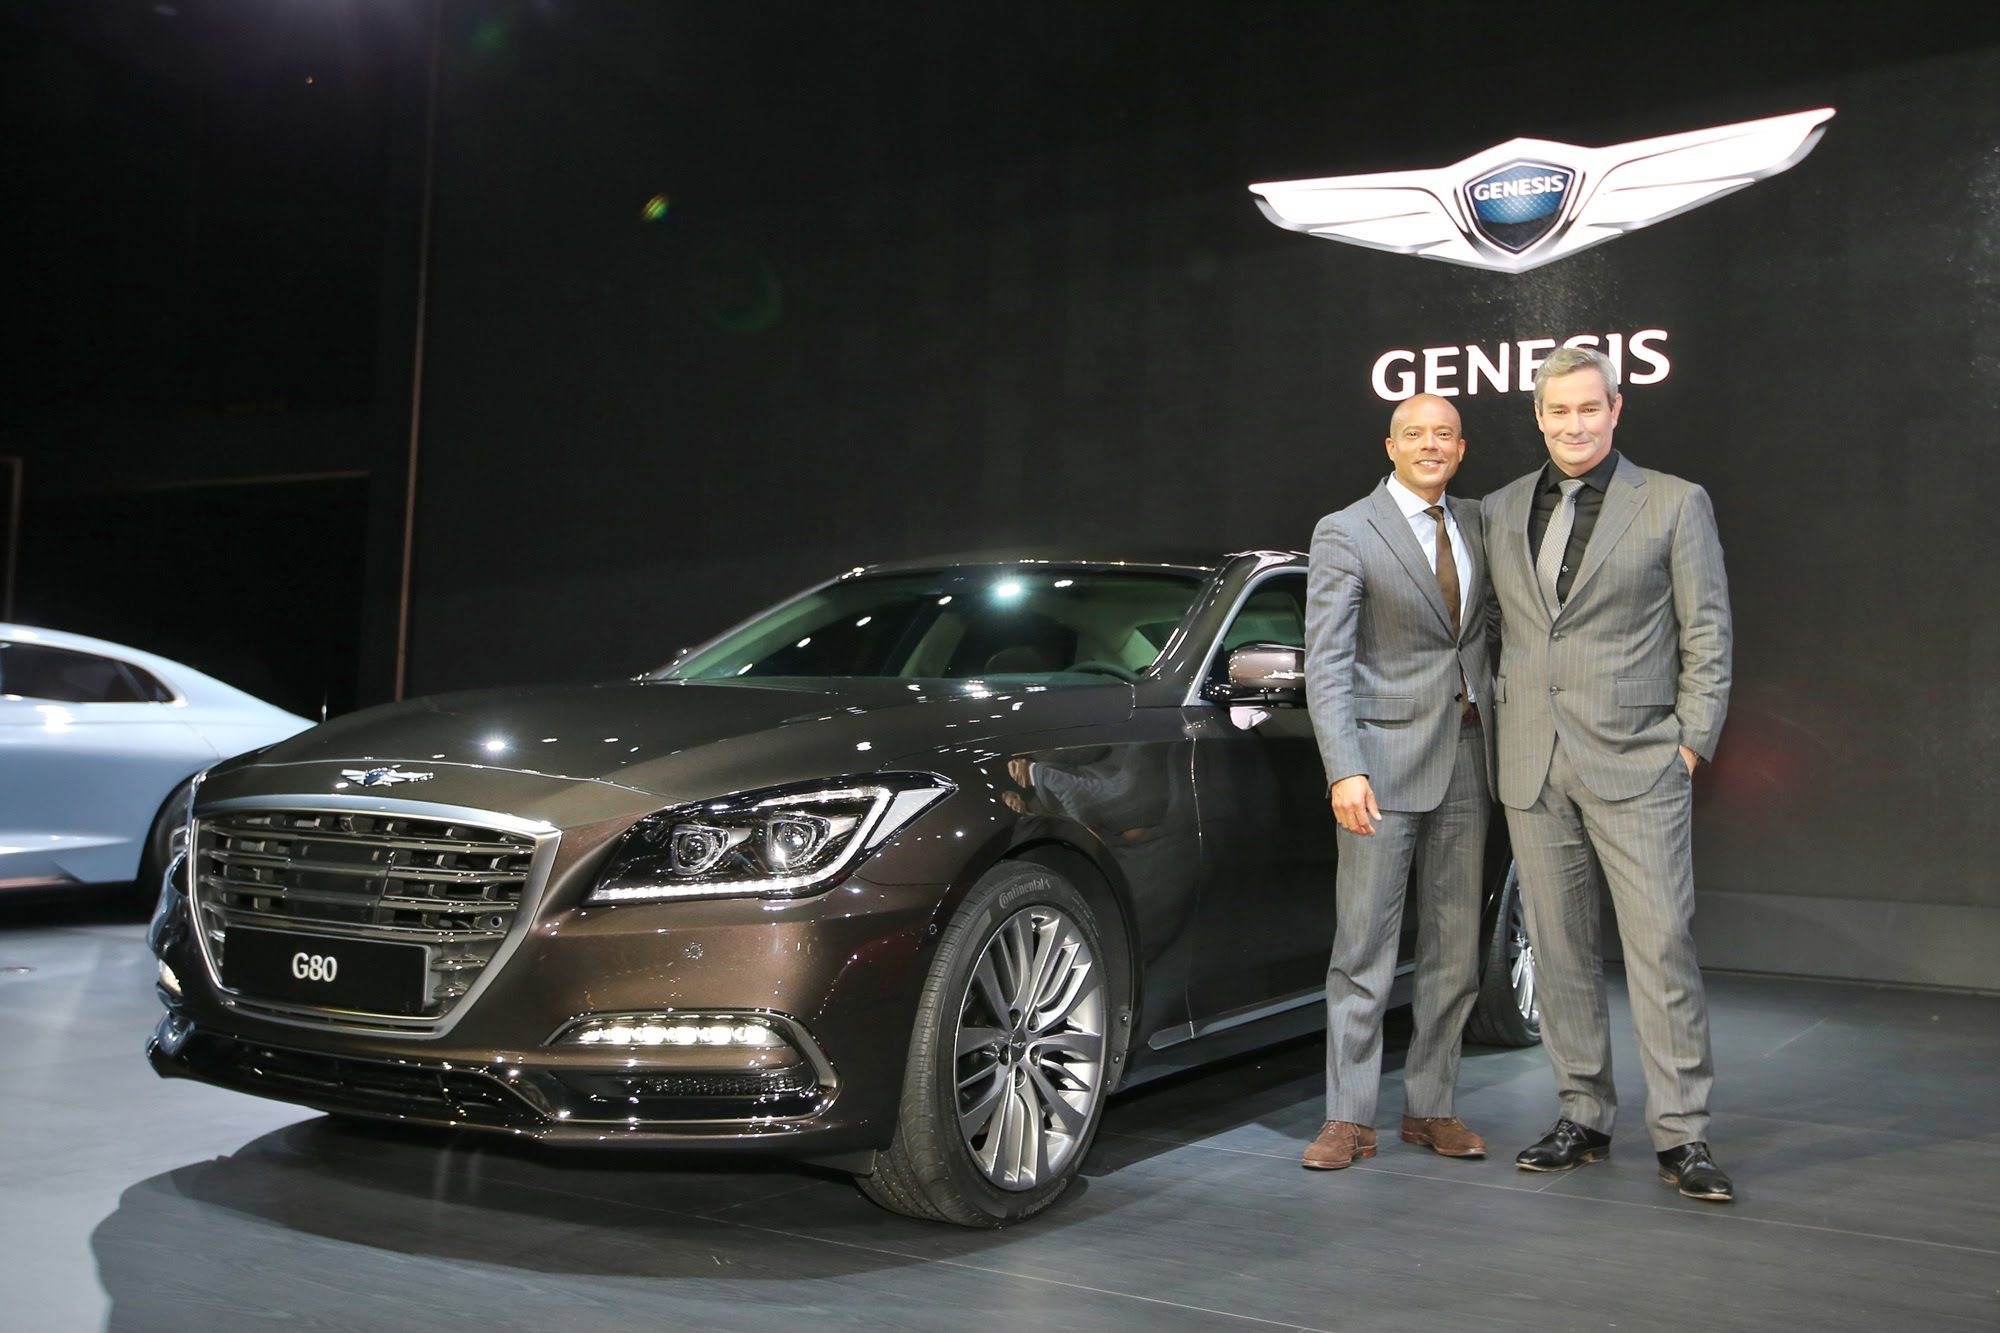 2017 Genesis G80 5 0 Has A Very Aggressive In The Auto Show That Will Be Conducted Diu New York We Saw Back March